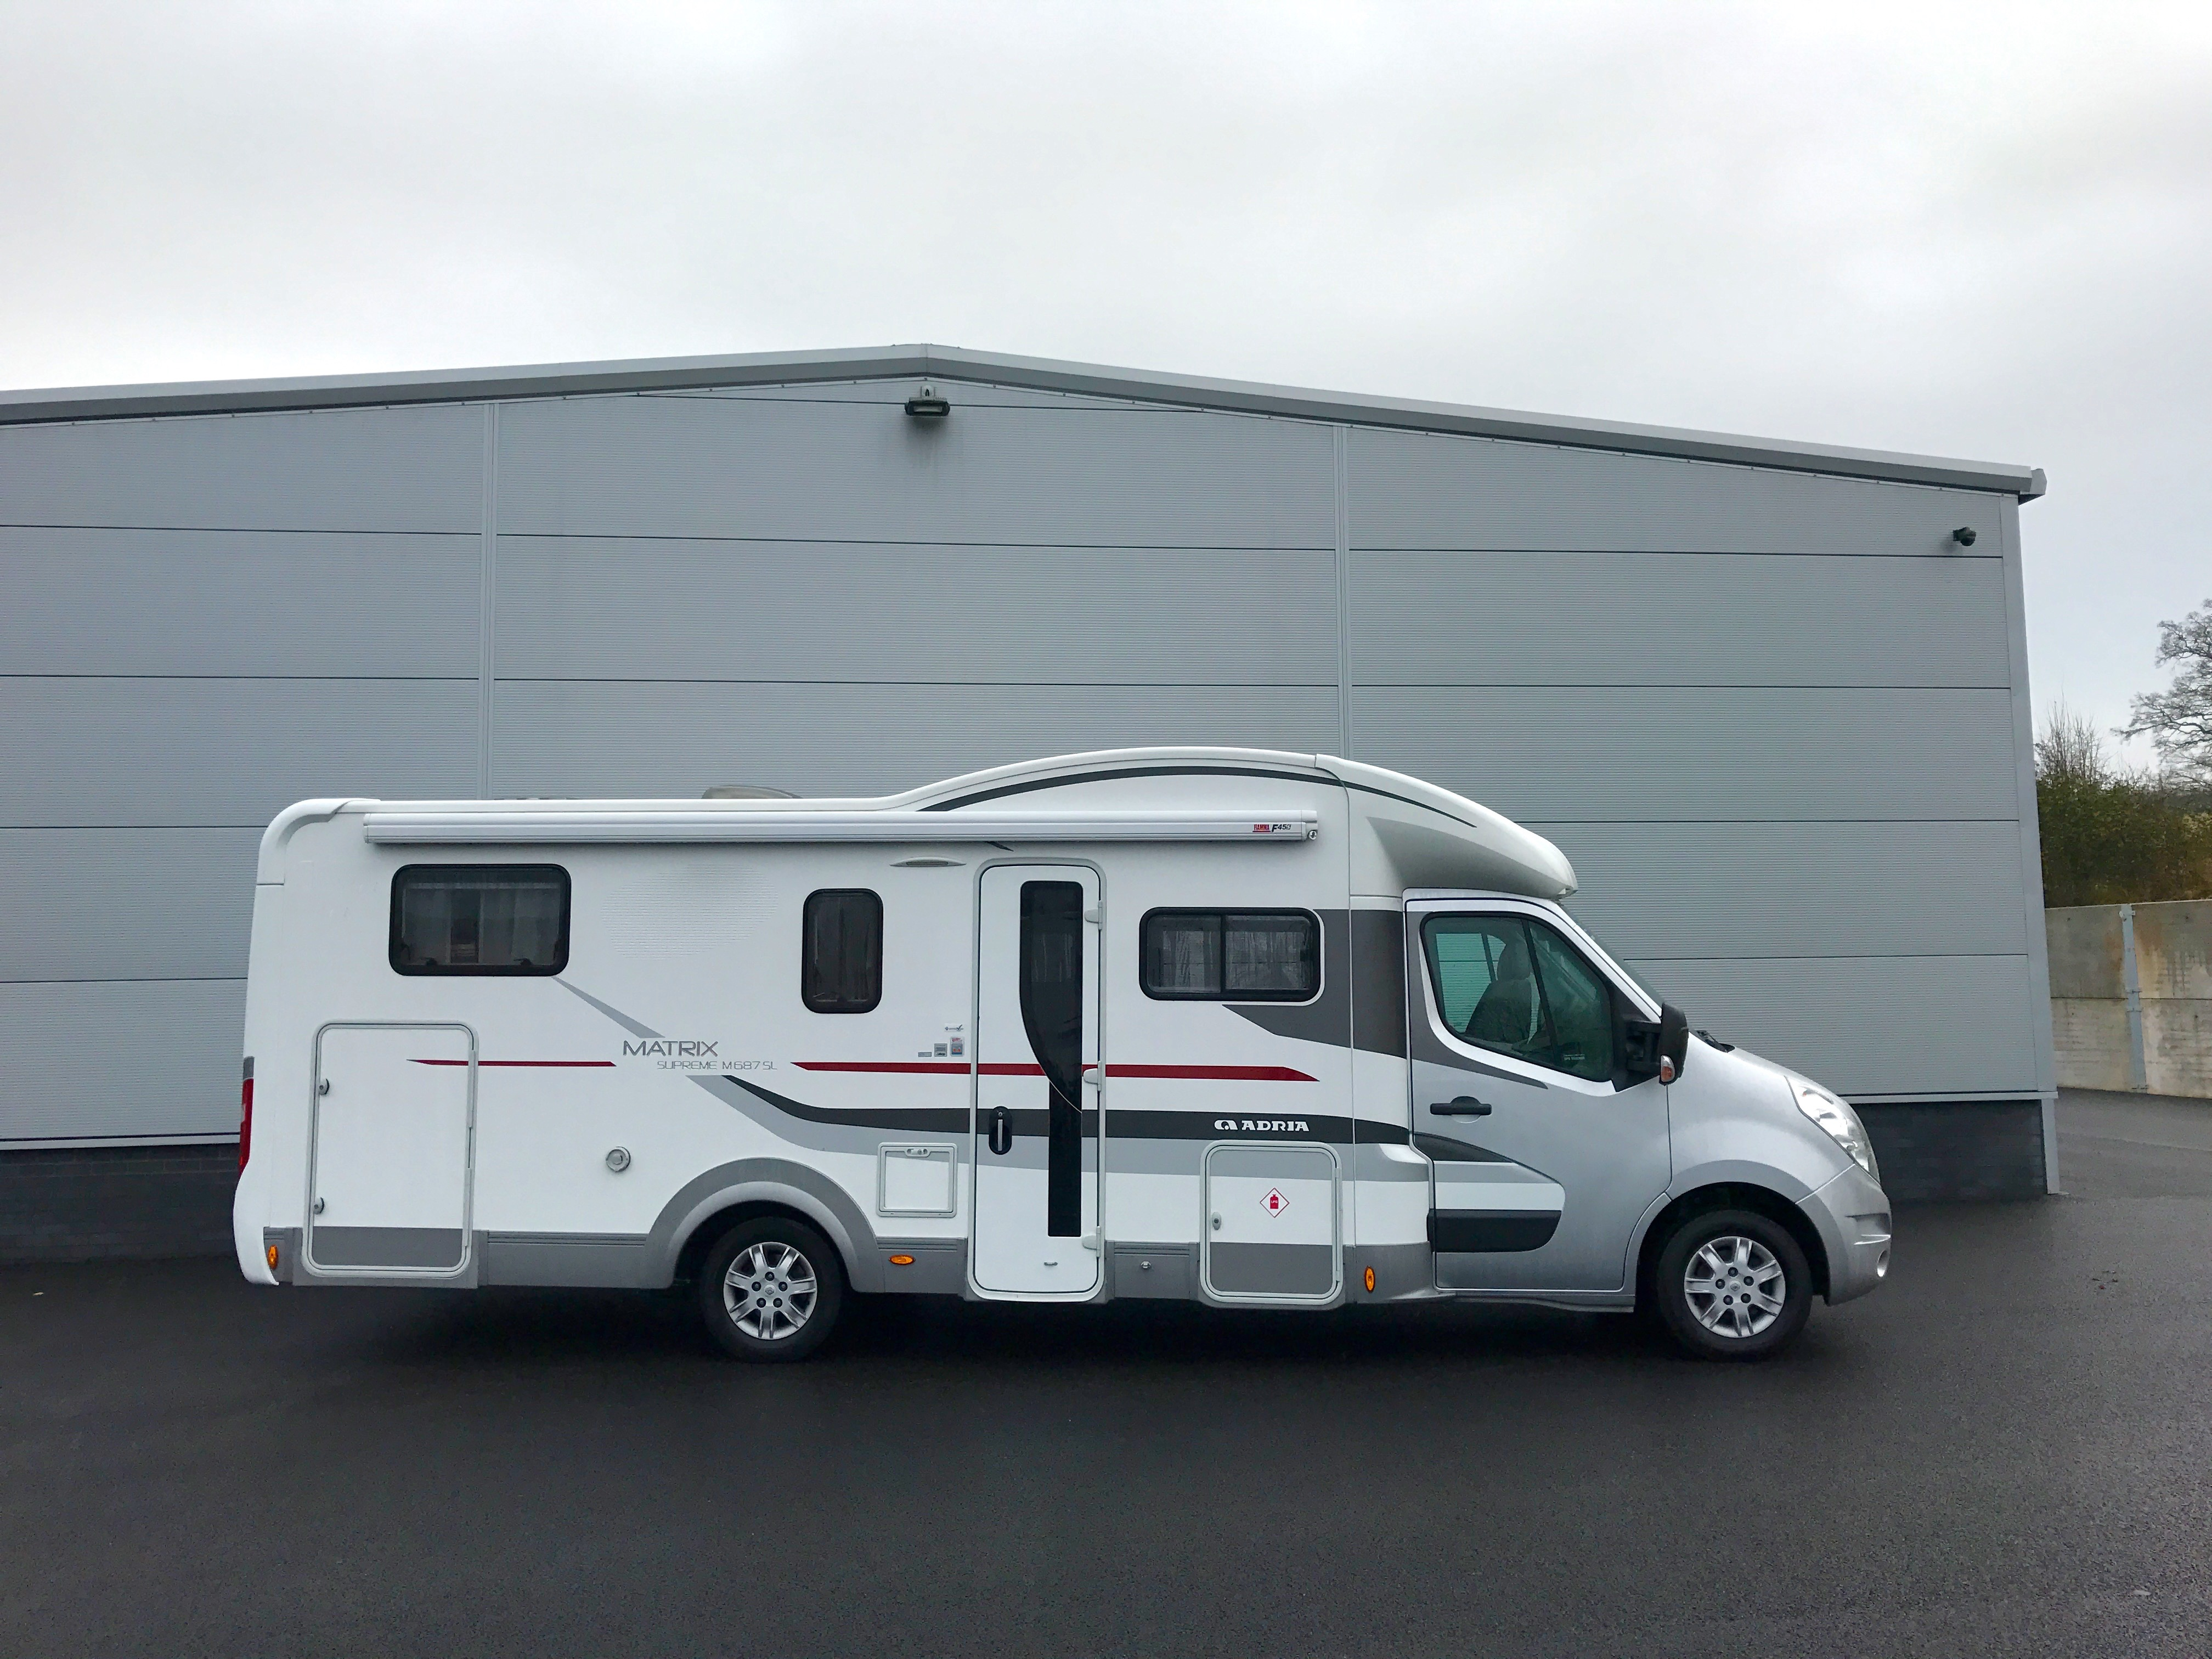 Adria Matrix Supreme For Sale Used Motorhome Now